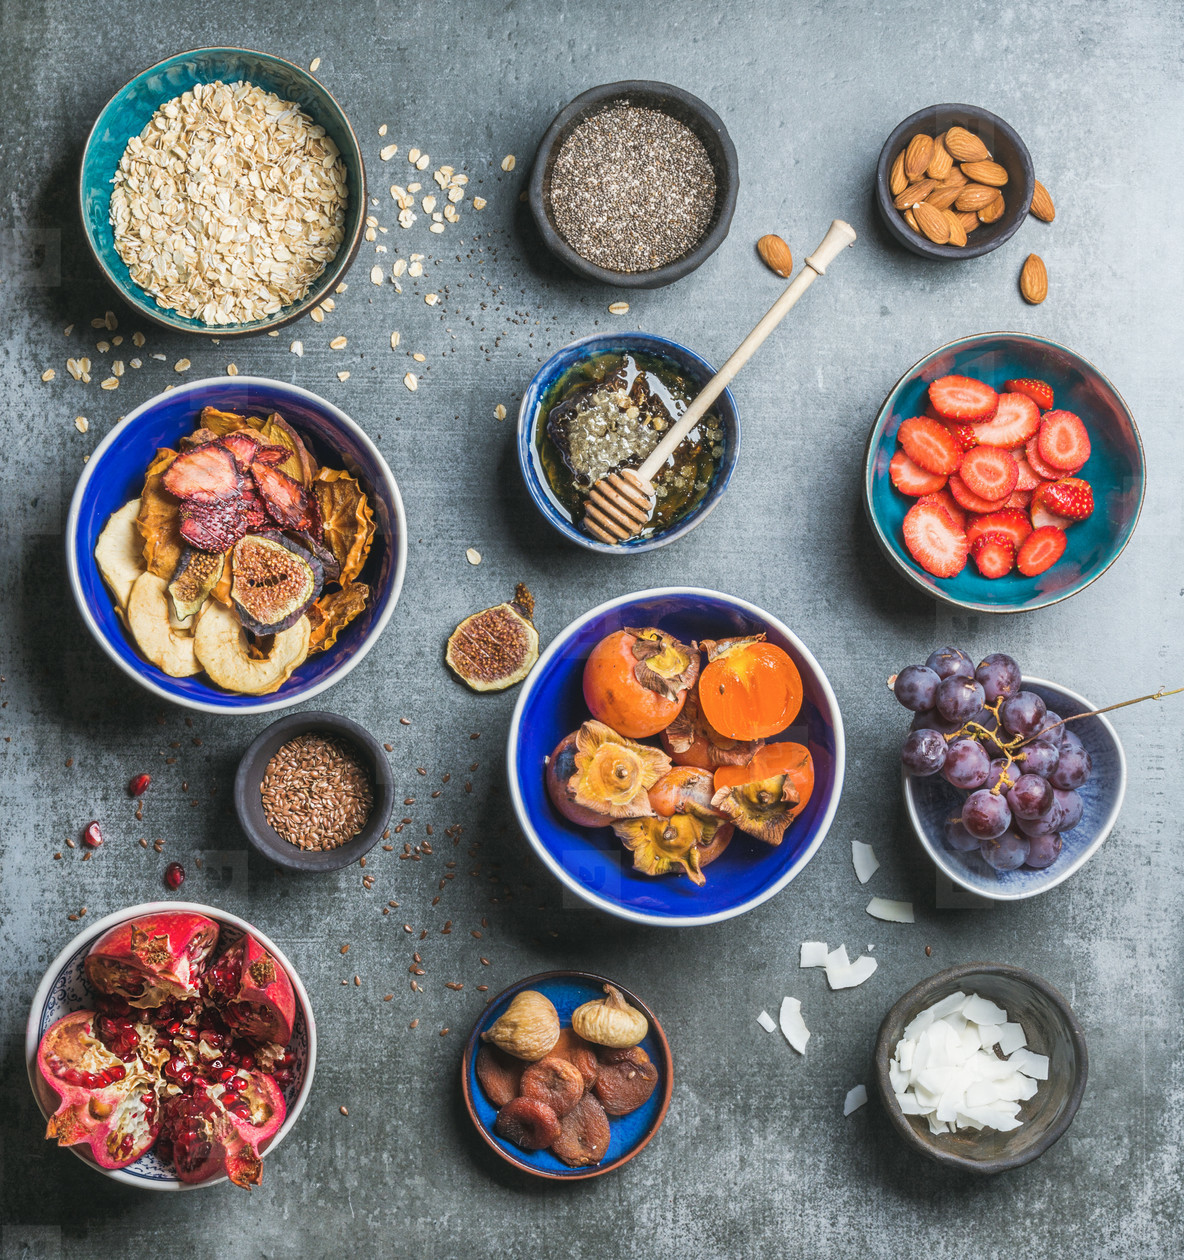 Ingredients for healthy breakfast over grey stone background